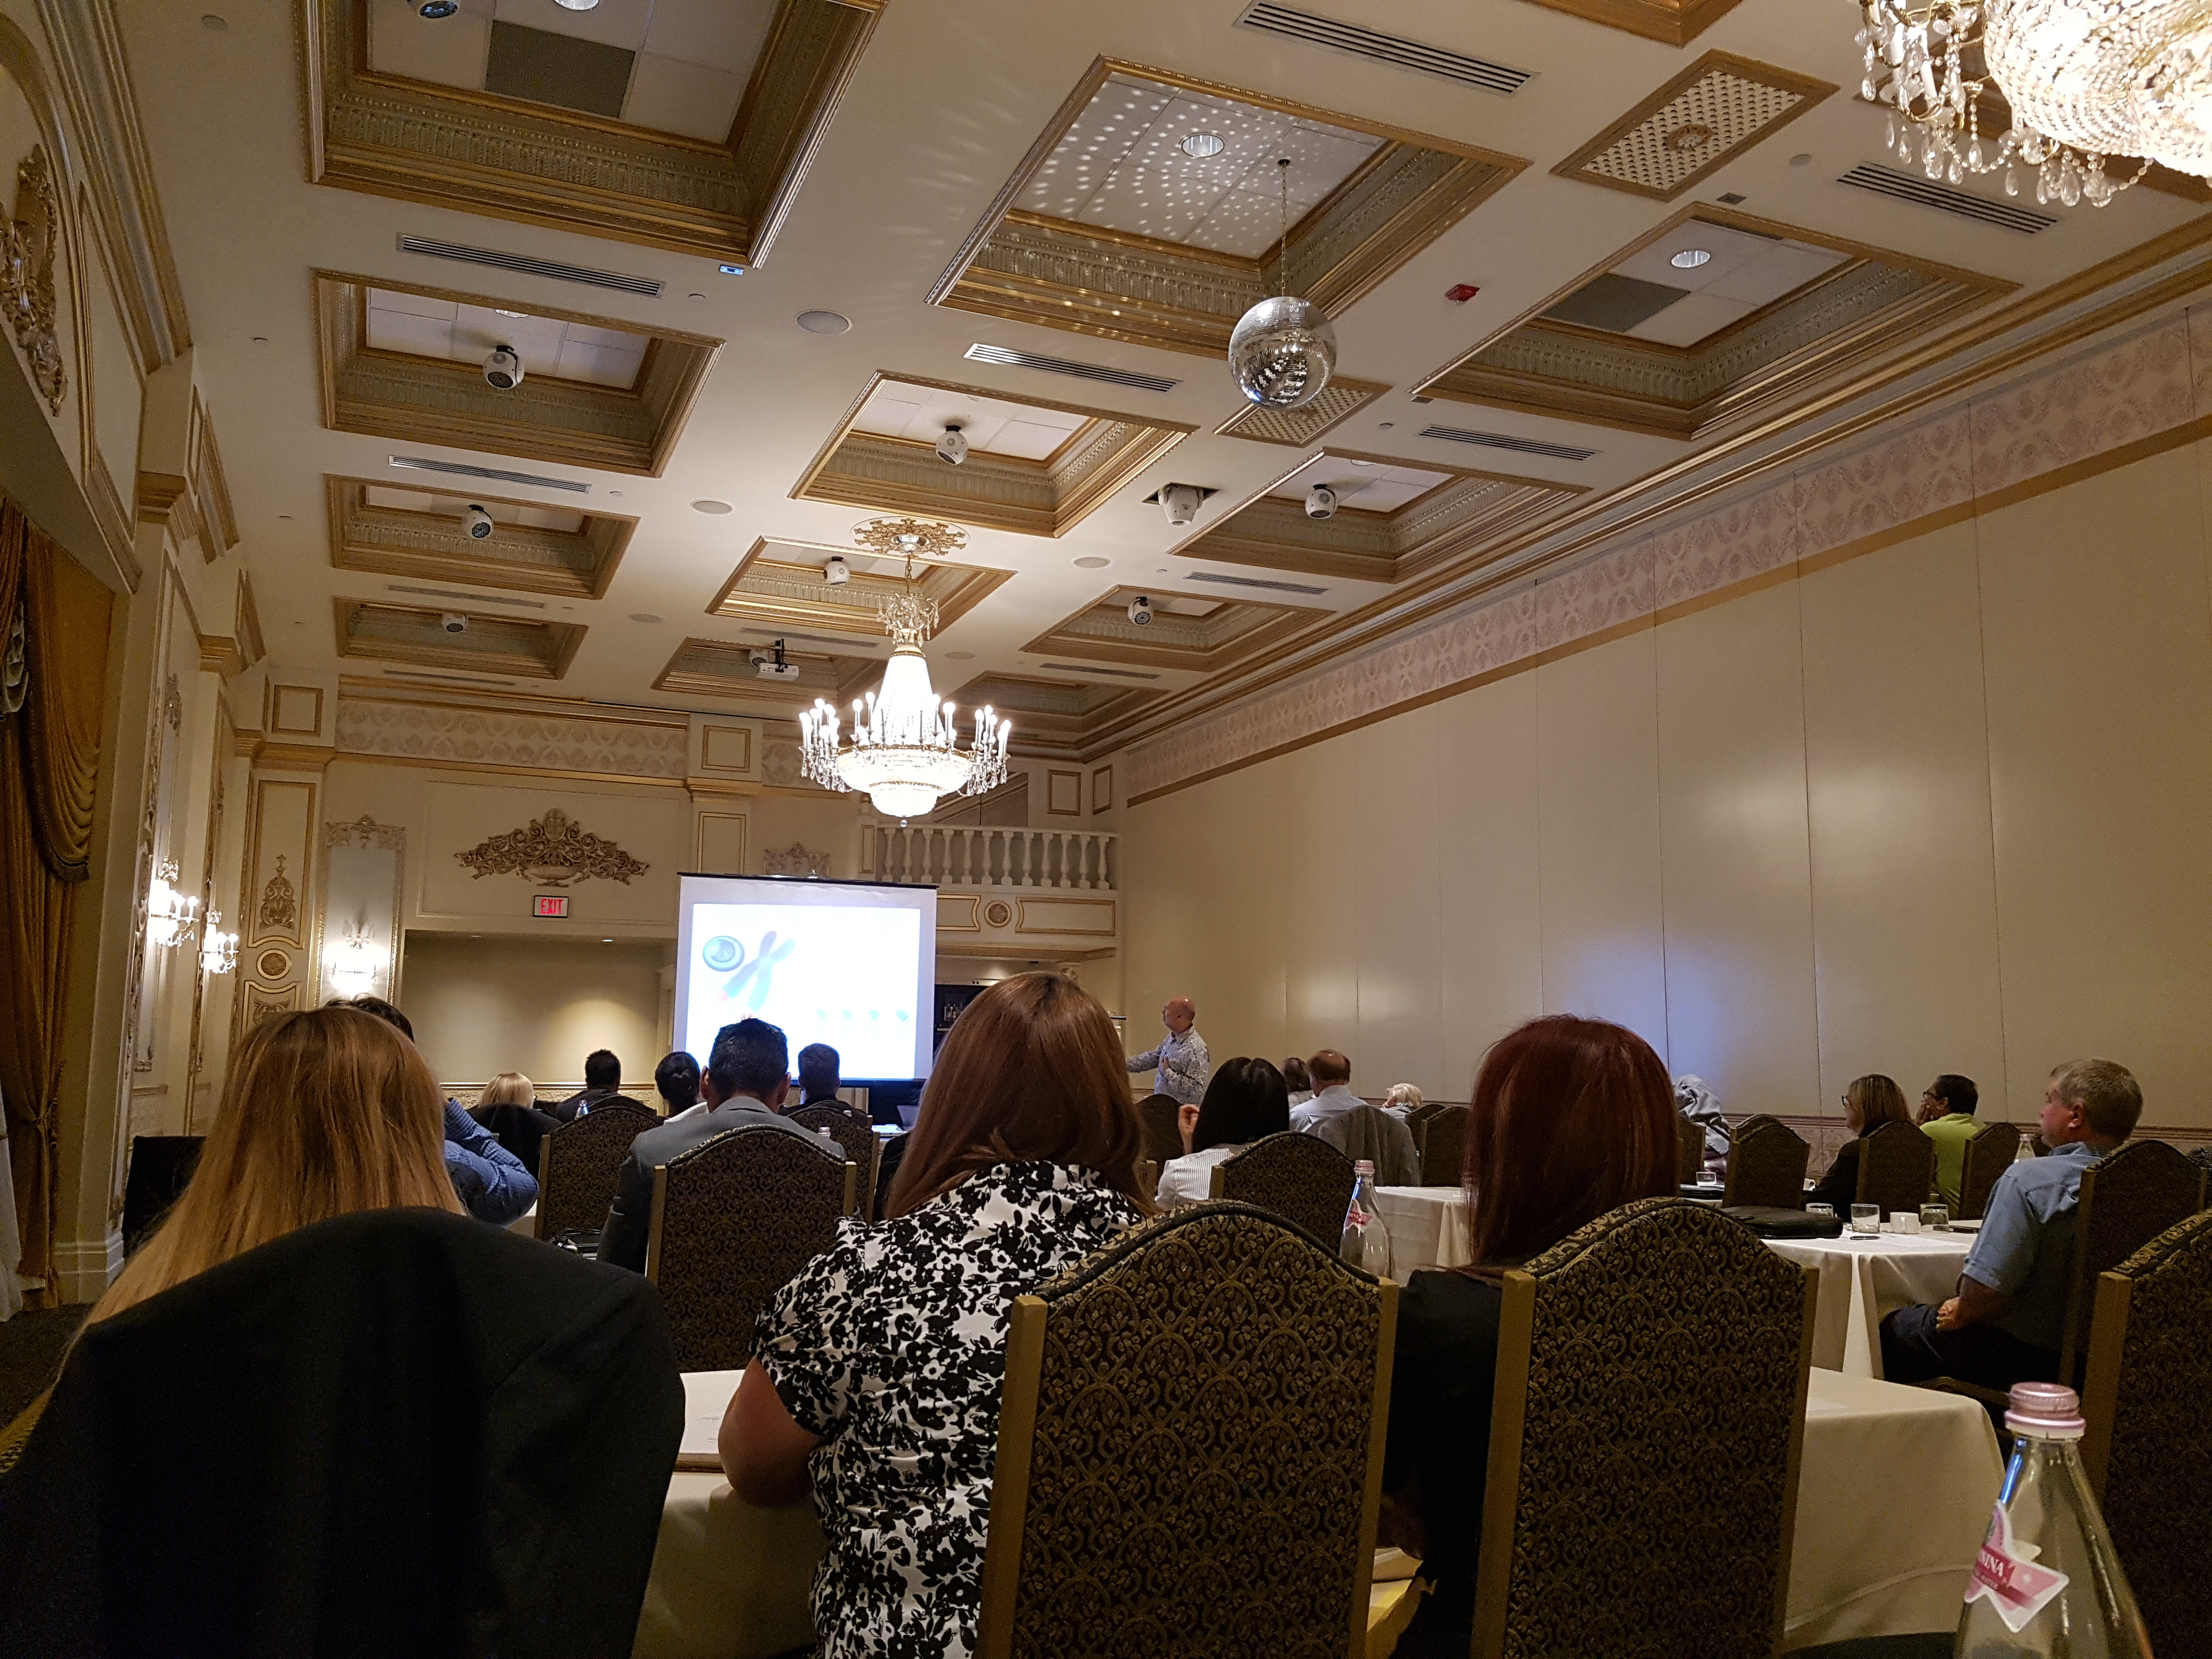 A Presentation in front of a room full of people at Education Day at SCC Ontario